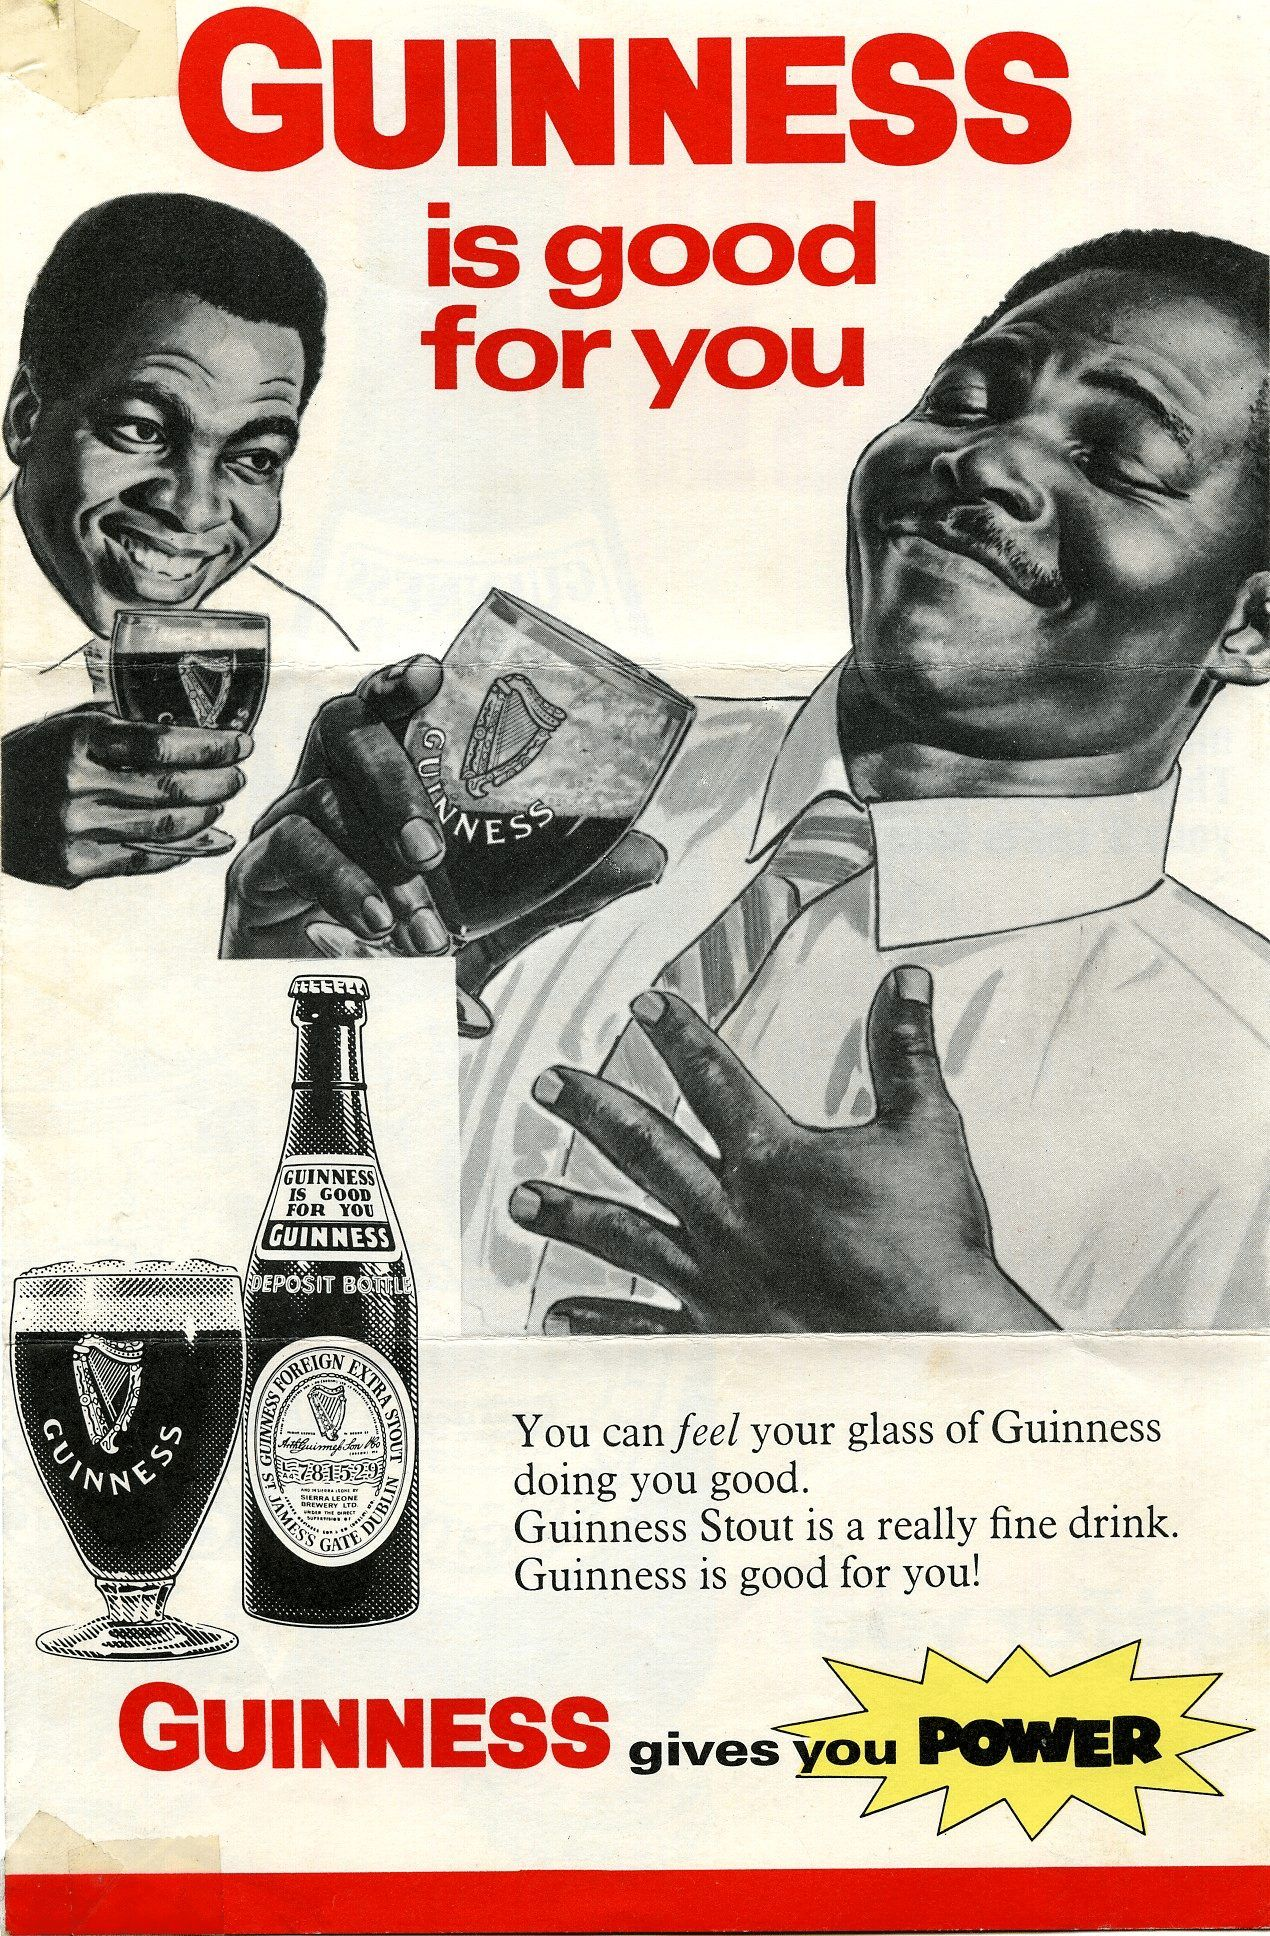 Pin by Kevin Carpenter on Ephemera | Guinness advert, Funny